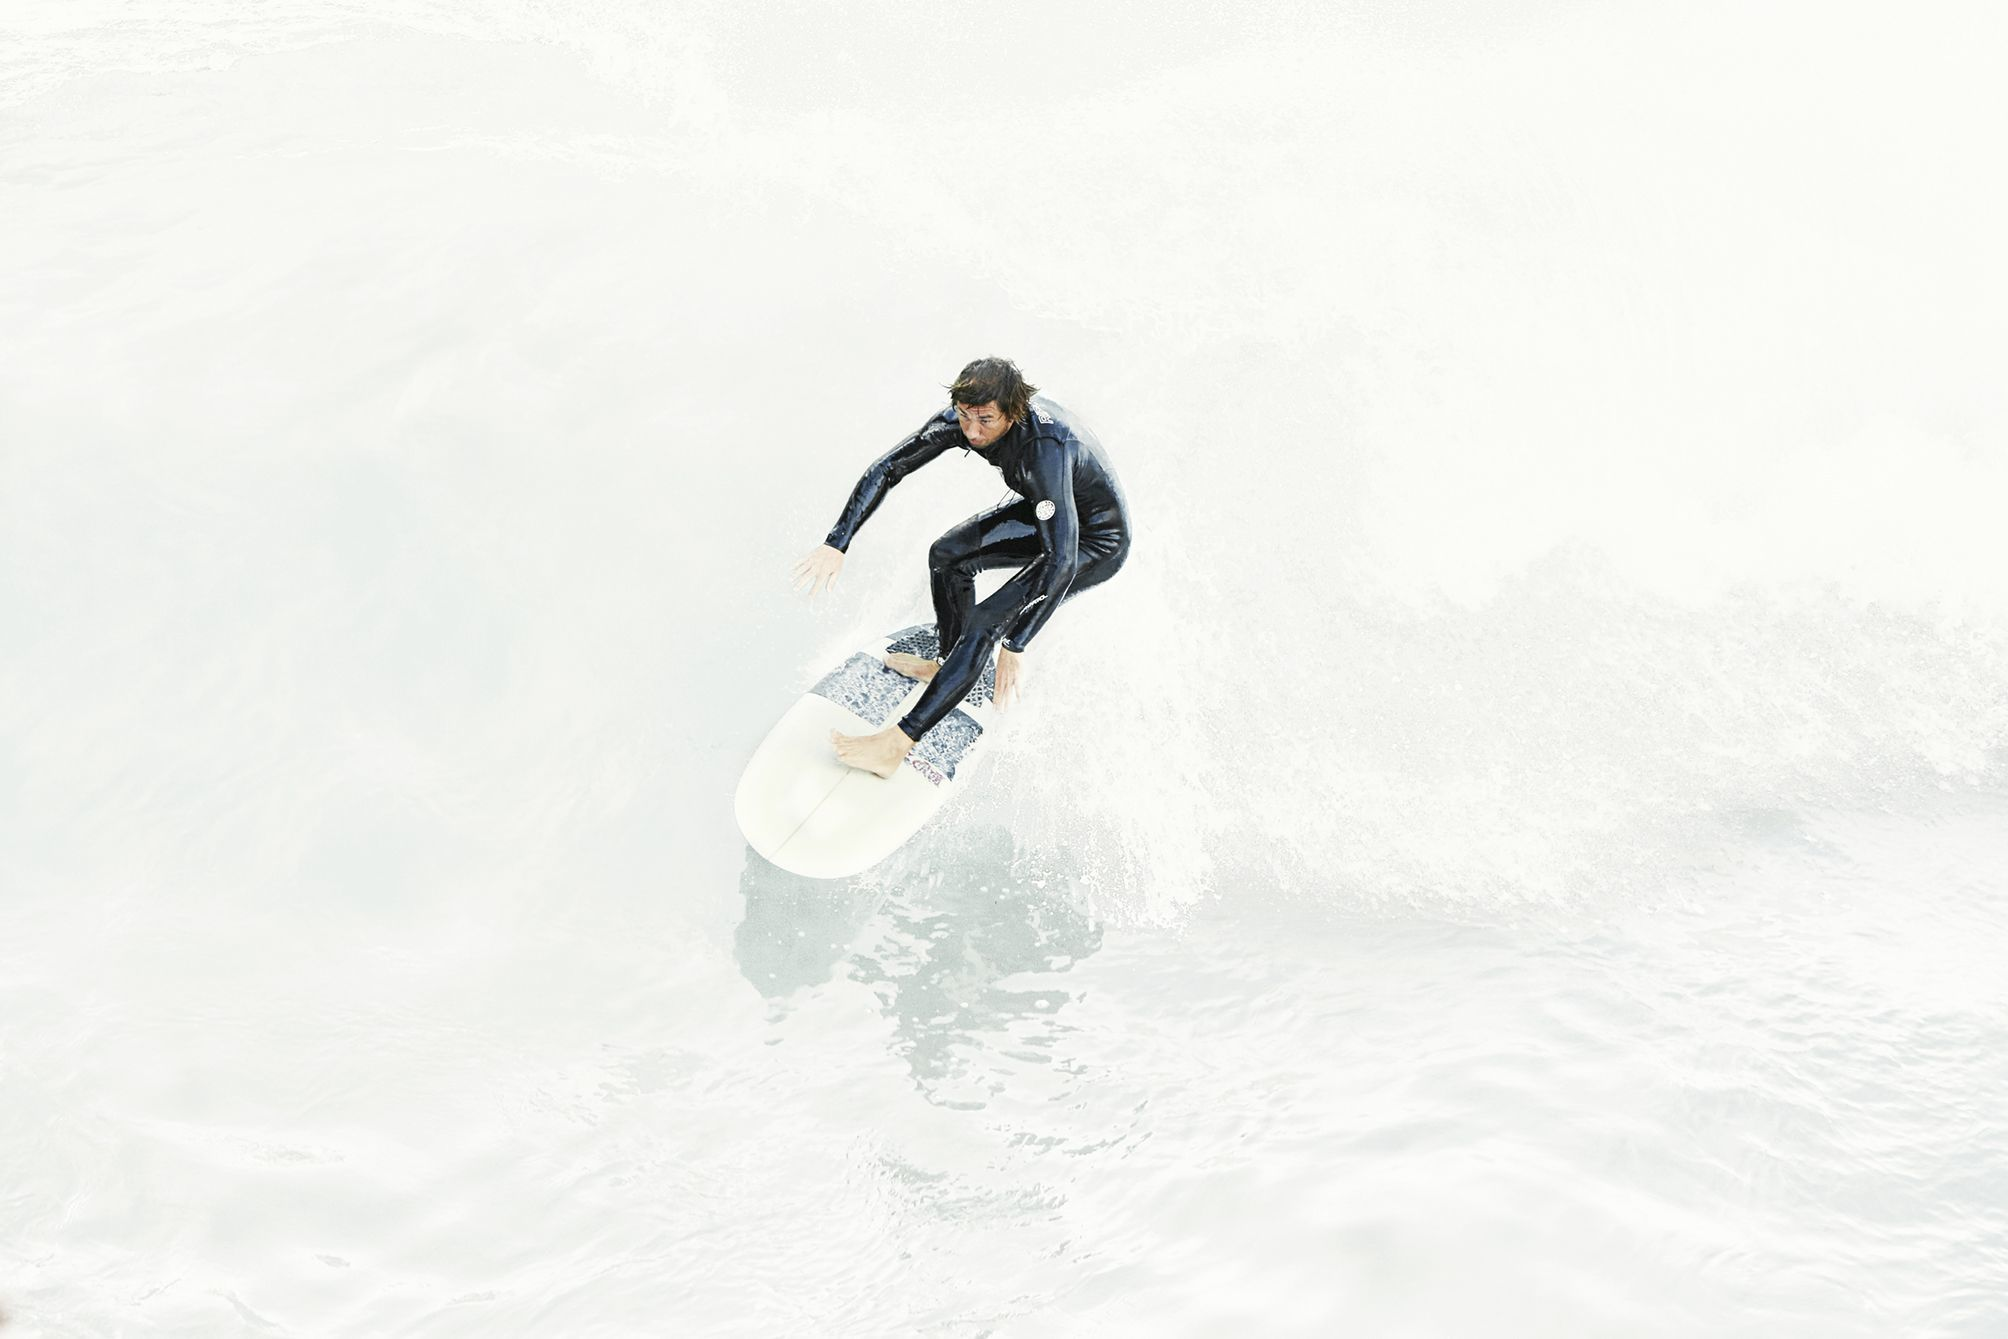 Surfer catching a wave in California